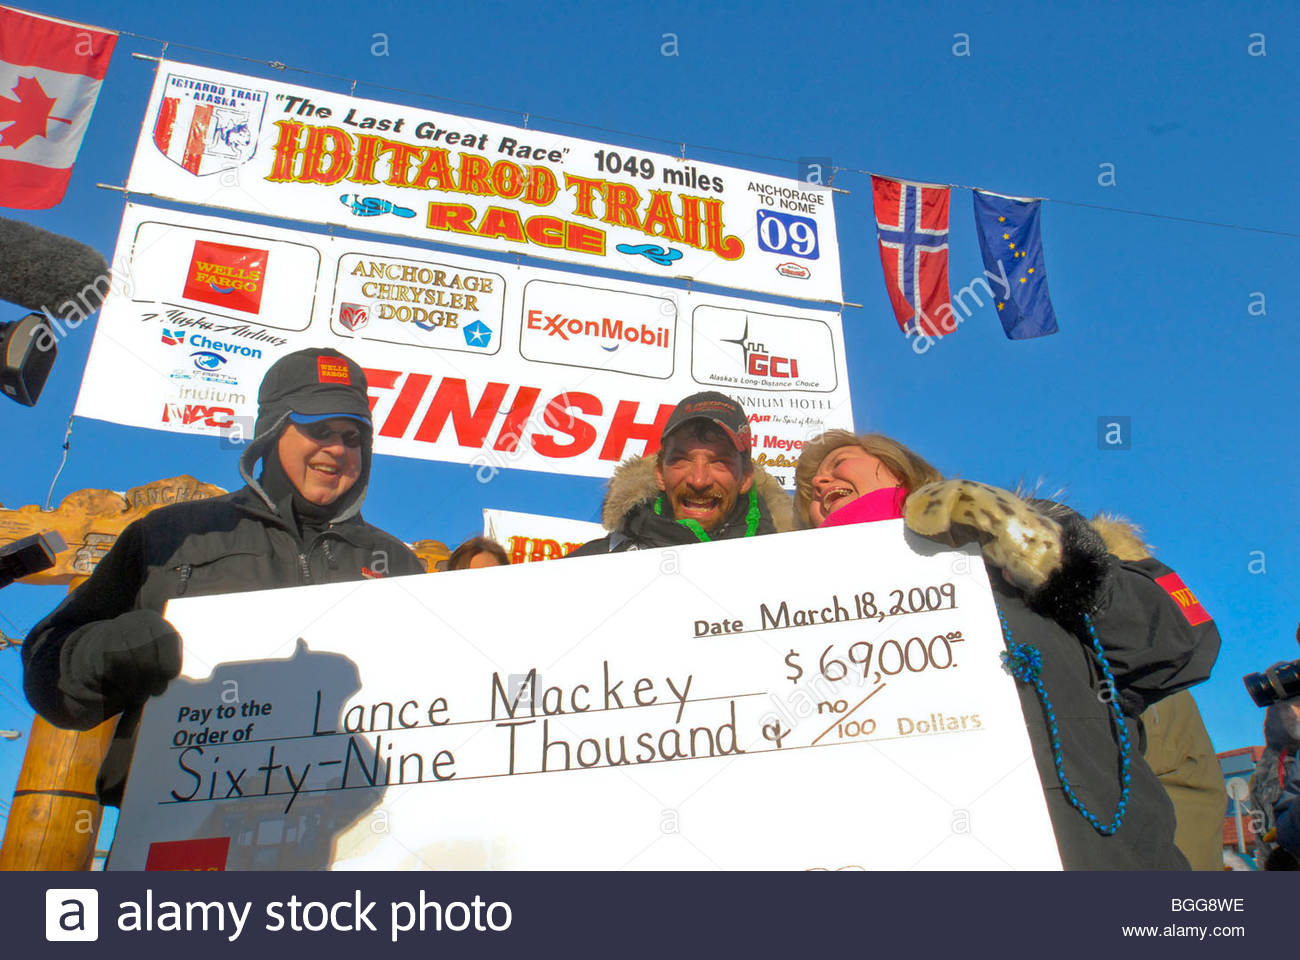 Lance Mackey with winning check for $69,000 1st place in 37th Iditarod race, Nome, Alaska, March 18, 2009 - Stock Image